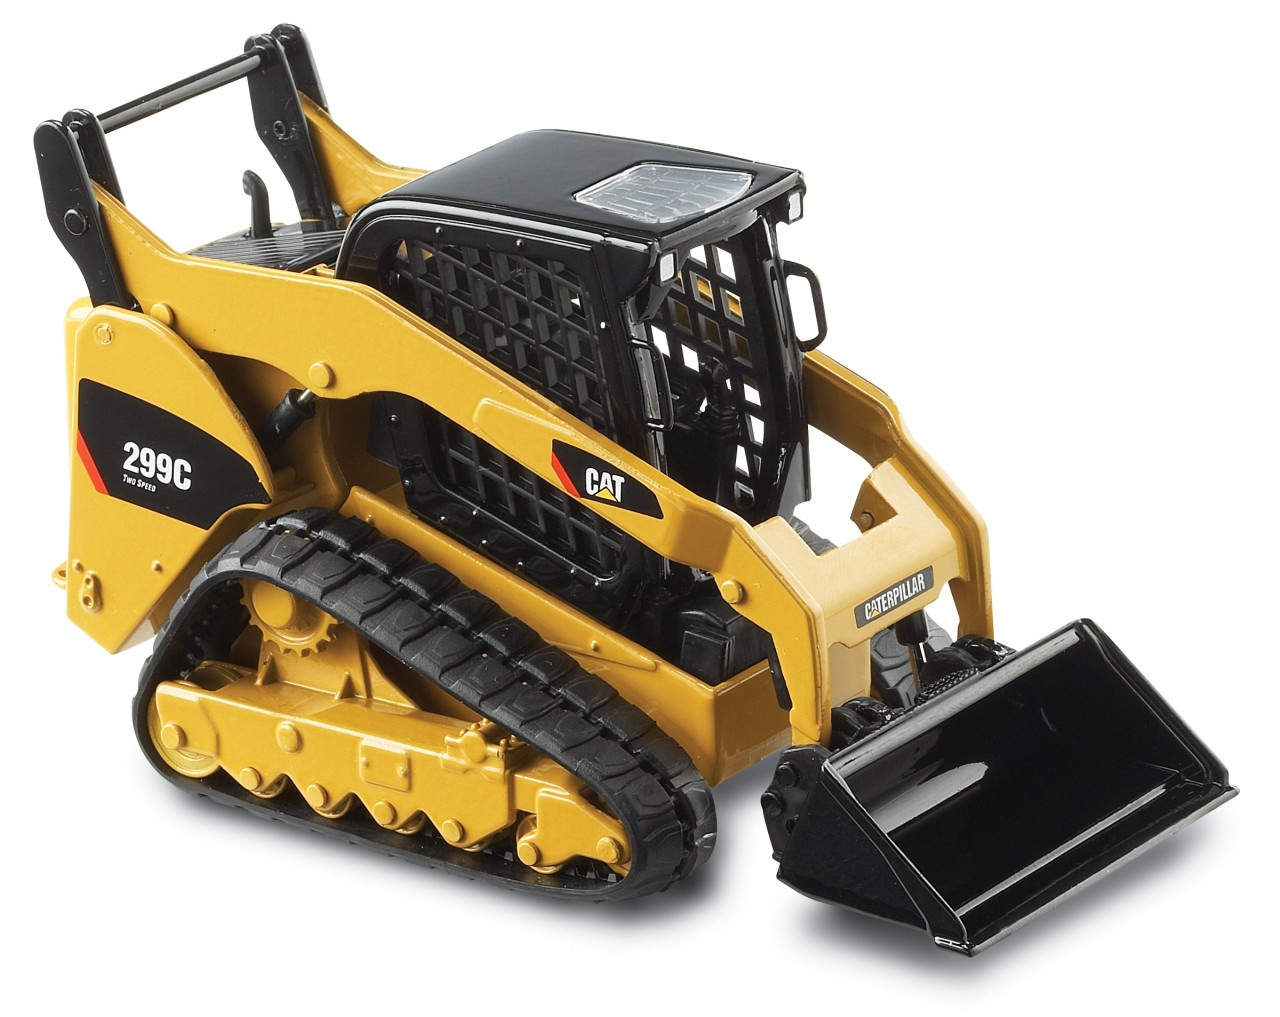 CAT 299C Compact Track Loader with work tools 55226 ...